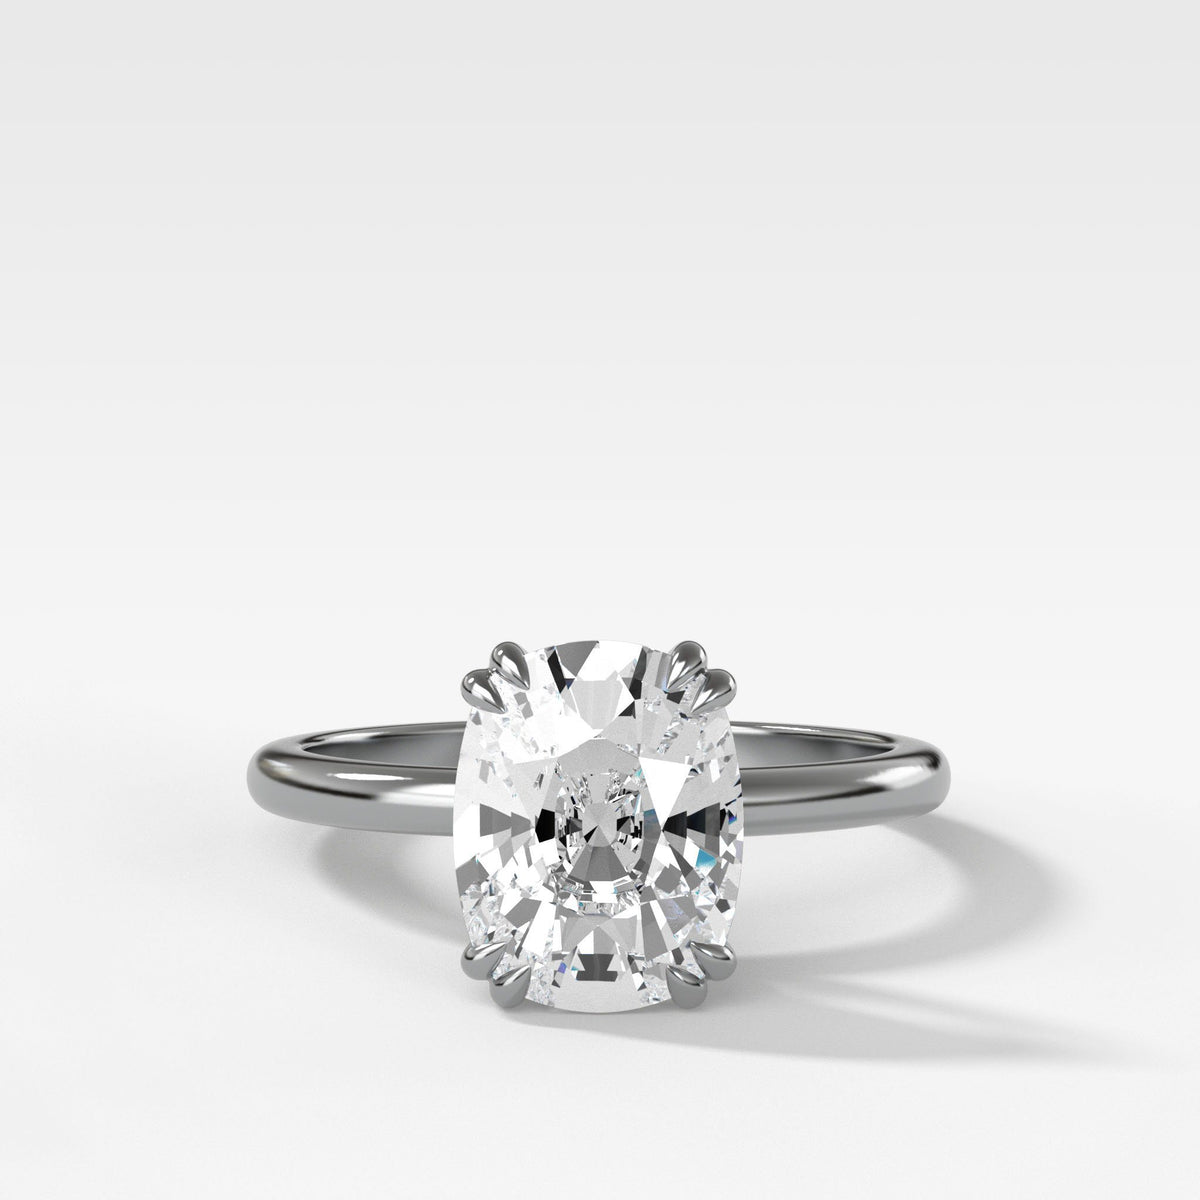 Signature Cathedral Solitaire With Elongated Cushion Cut om White Gold by Good Stone